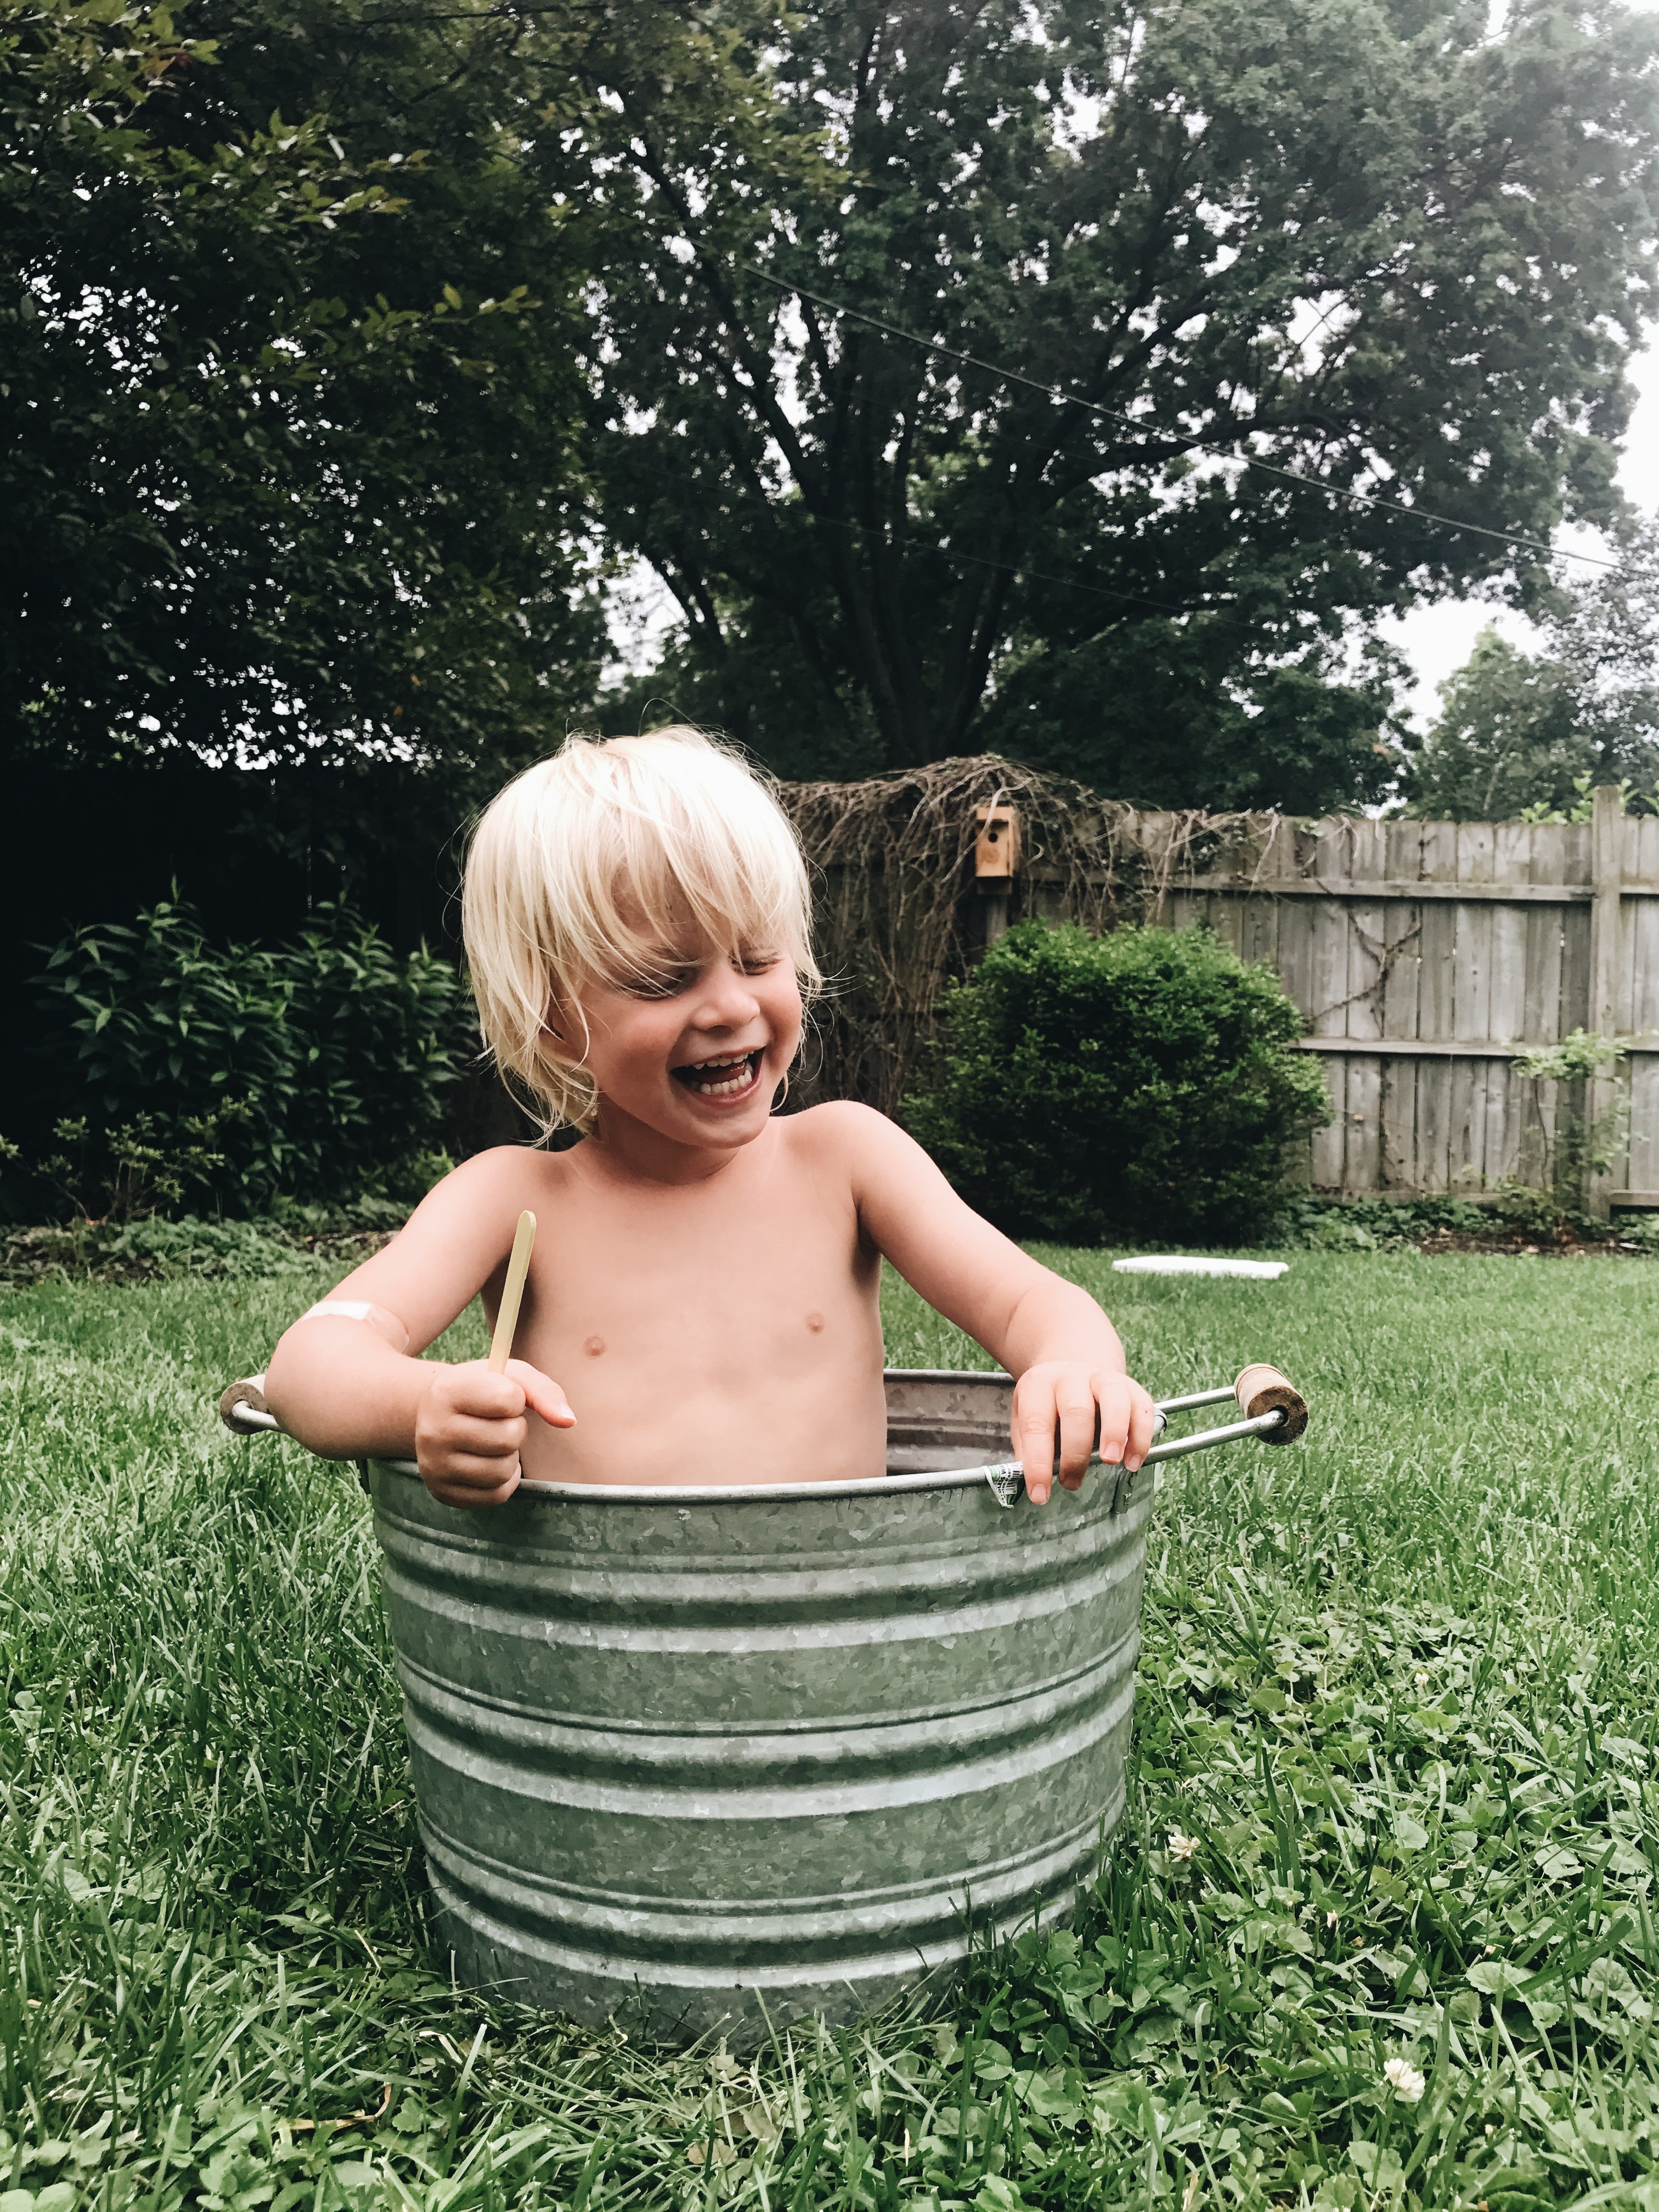 Will in a bucket